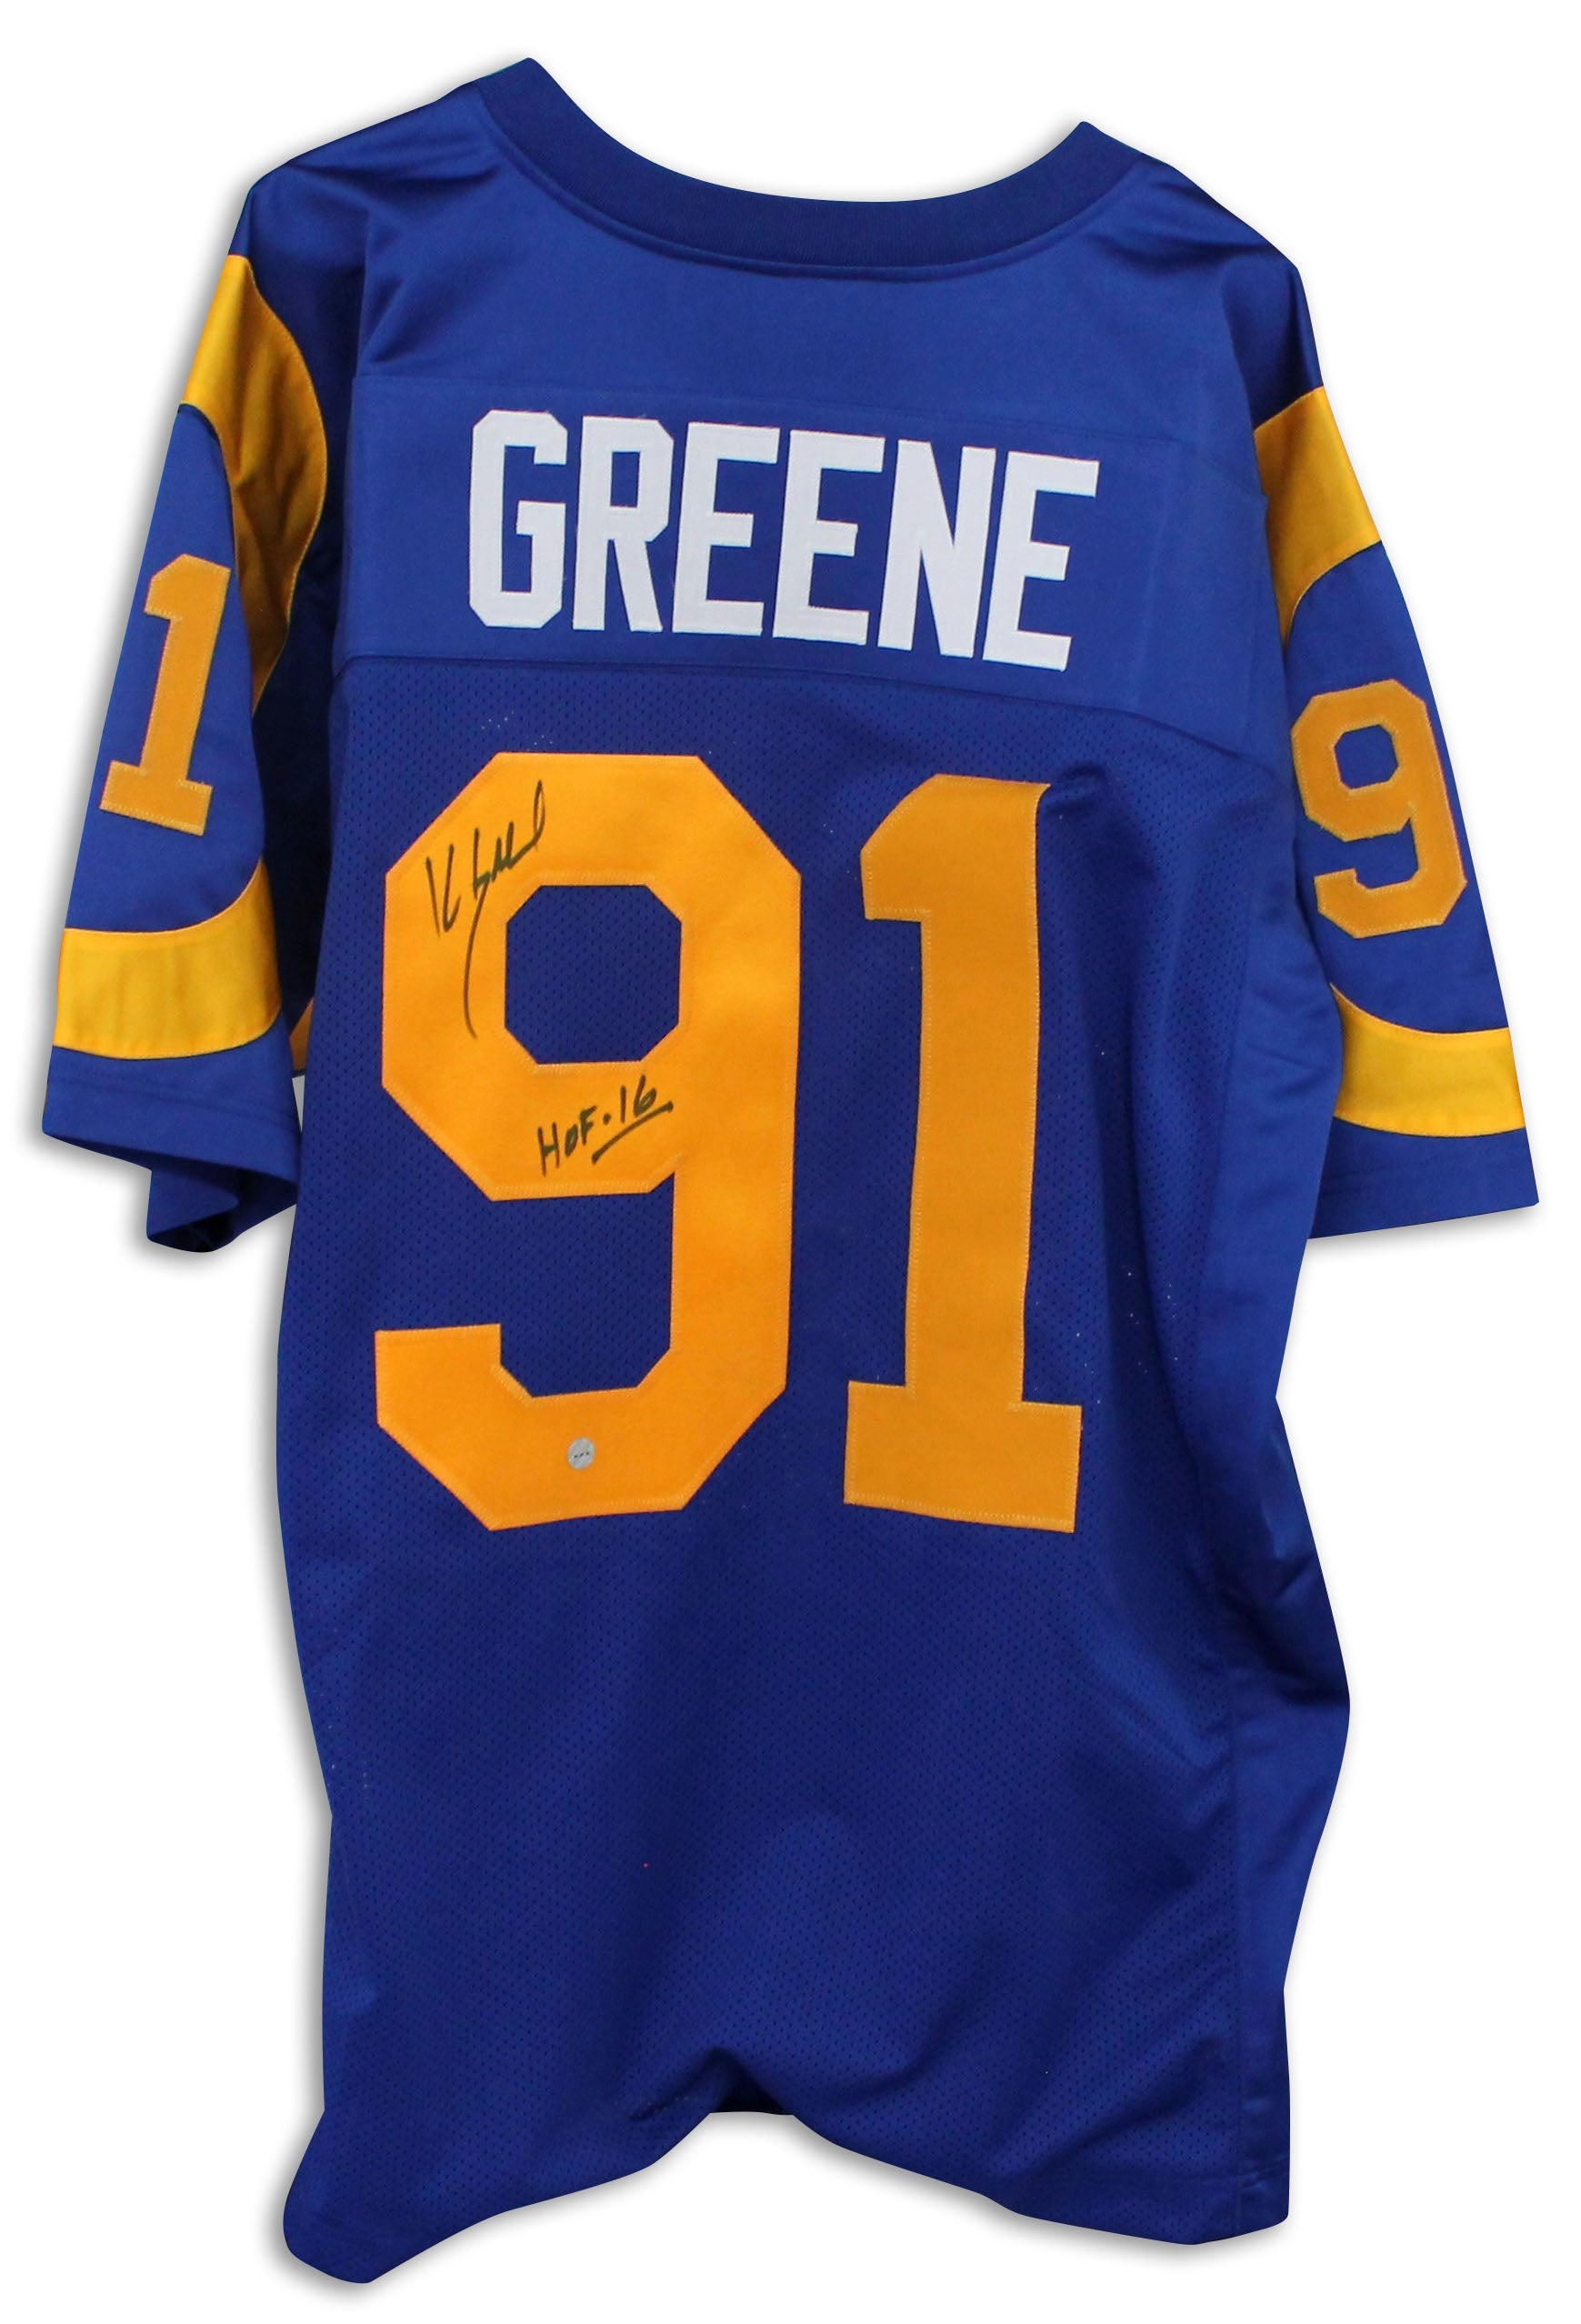 Kevin Greene Autographed Sports Memorabilia Football Collectibles